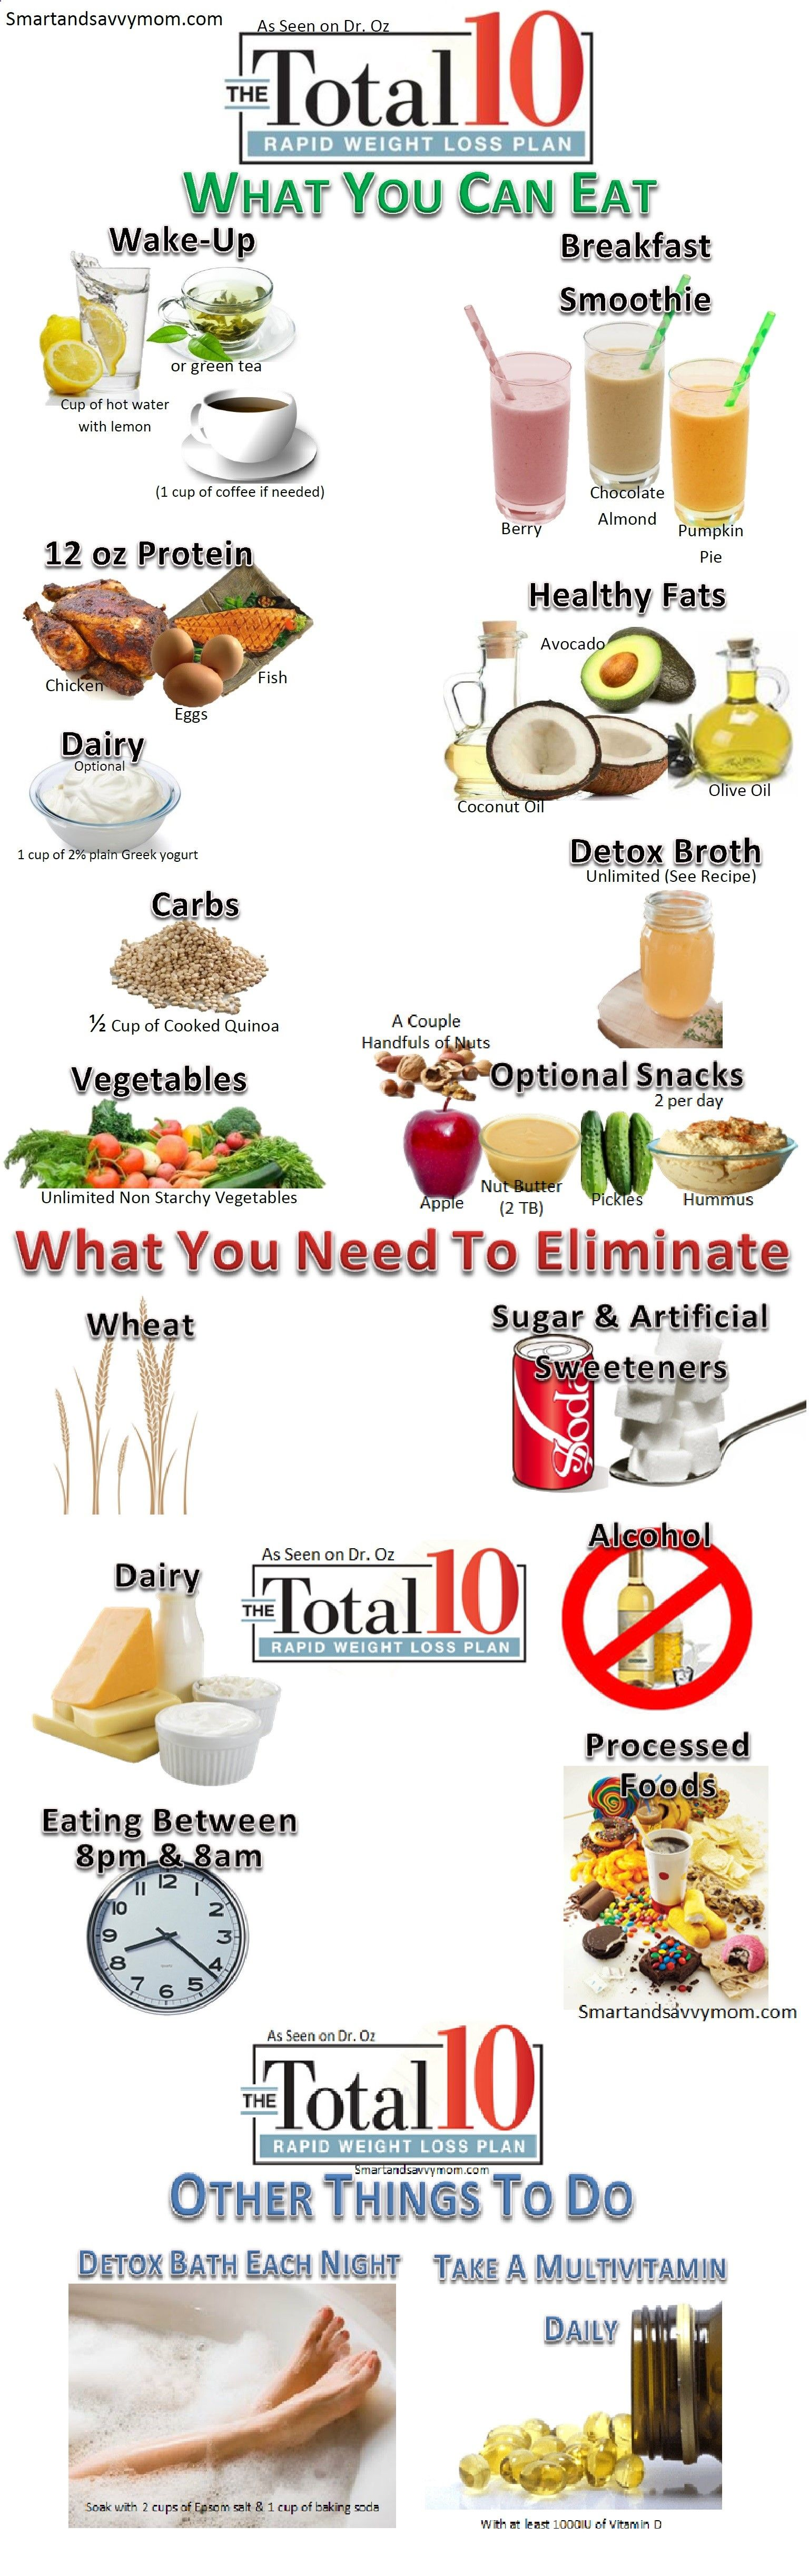 The sirtfood diet the revolutionary plan for health and weight loss the sirtfood diet the revolutionary plan for health and weight loss pdf picture 1 forumfinder Choice Image